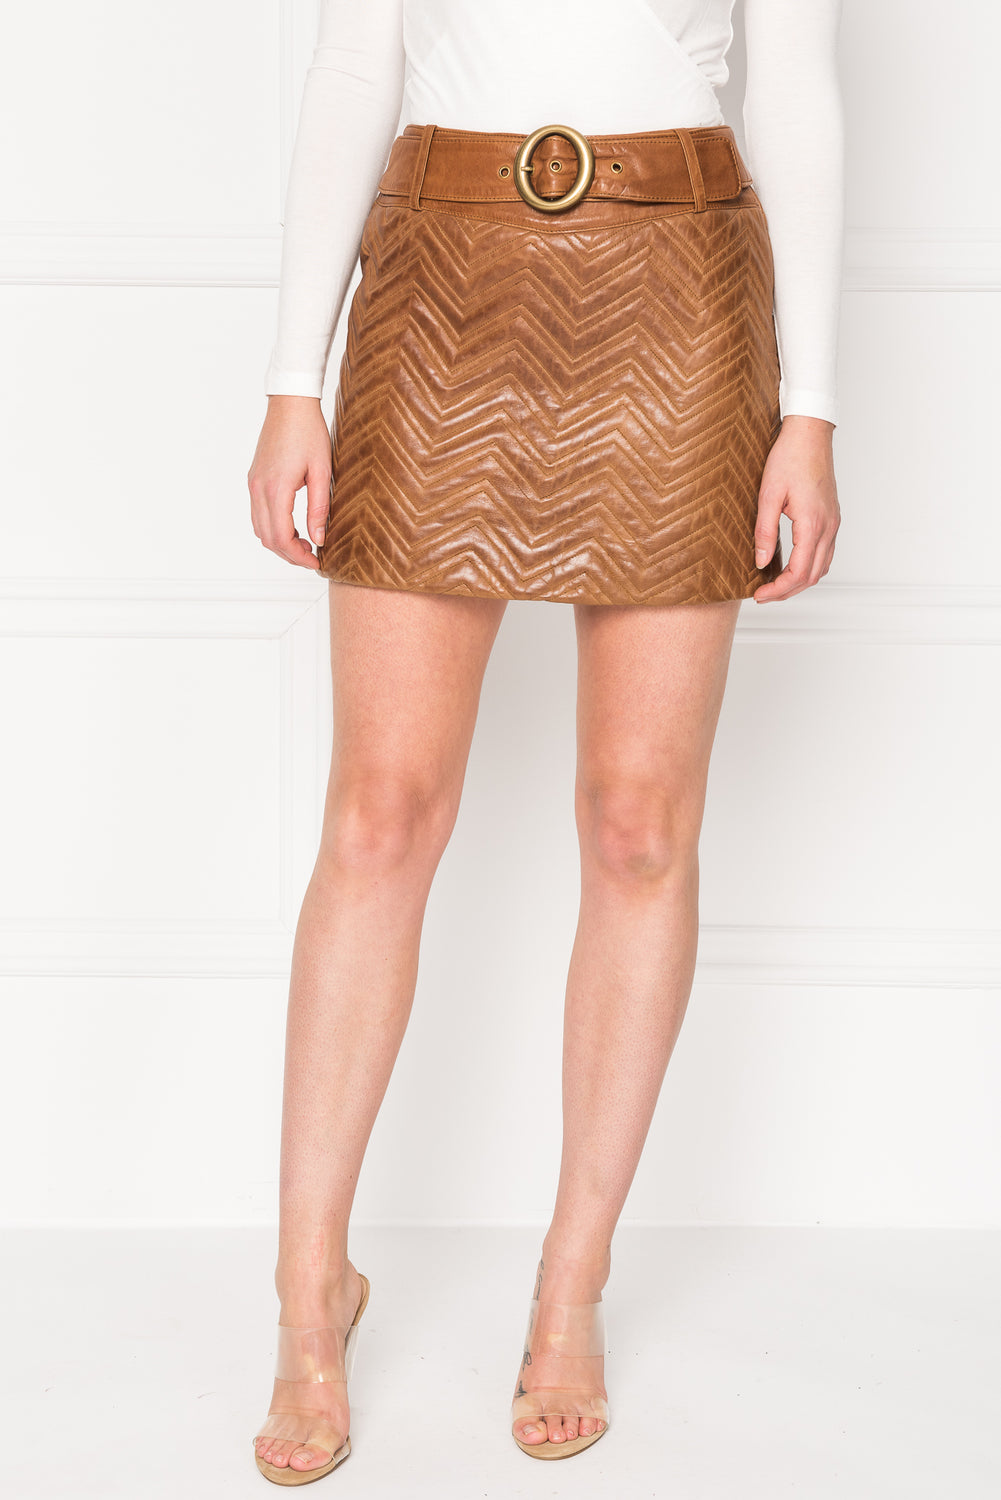 KISSA Luggage Quilted Belted Leather Mini Skirt